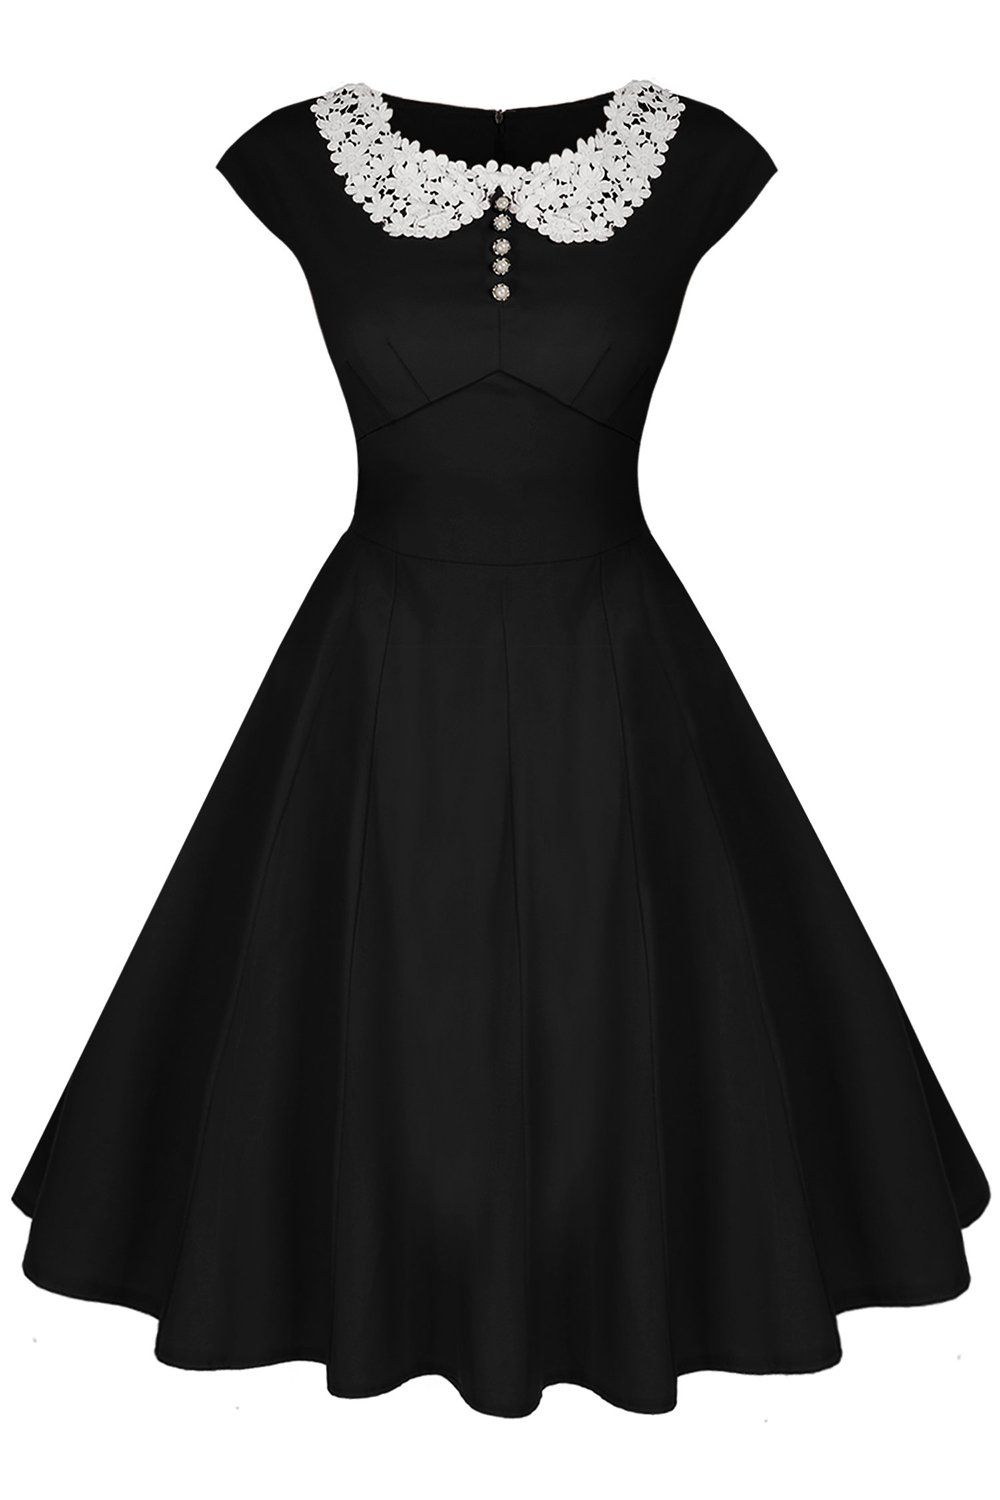 9daaa3b4f 1940s Dress Styles Audrey Hepburn Style 19d0s Rockabilly Evening Dress  $26.50 AT vintagedancer.com